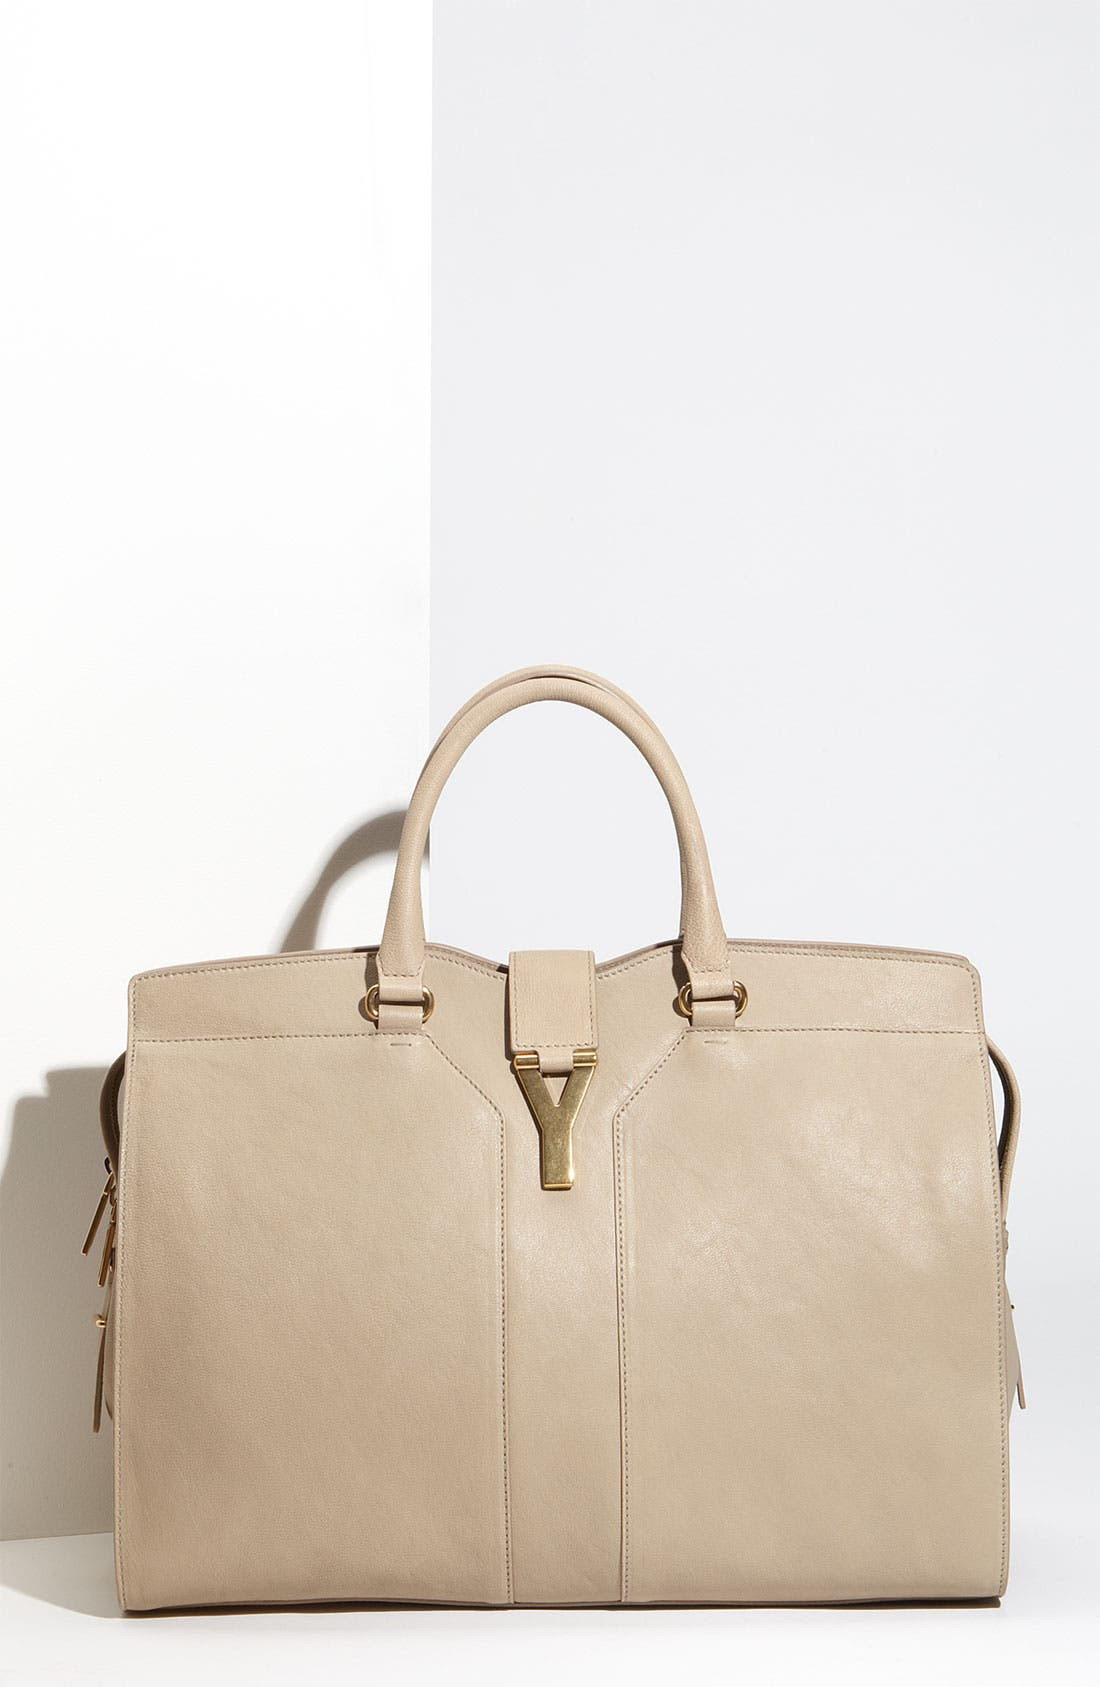 Alternate Image 1 Selected - Yves Saint Laurent 'Cabas Chyc - Large' Leather Satchel